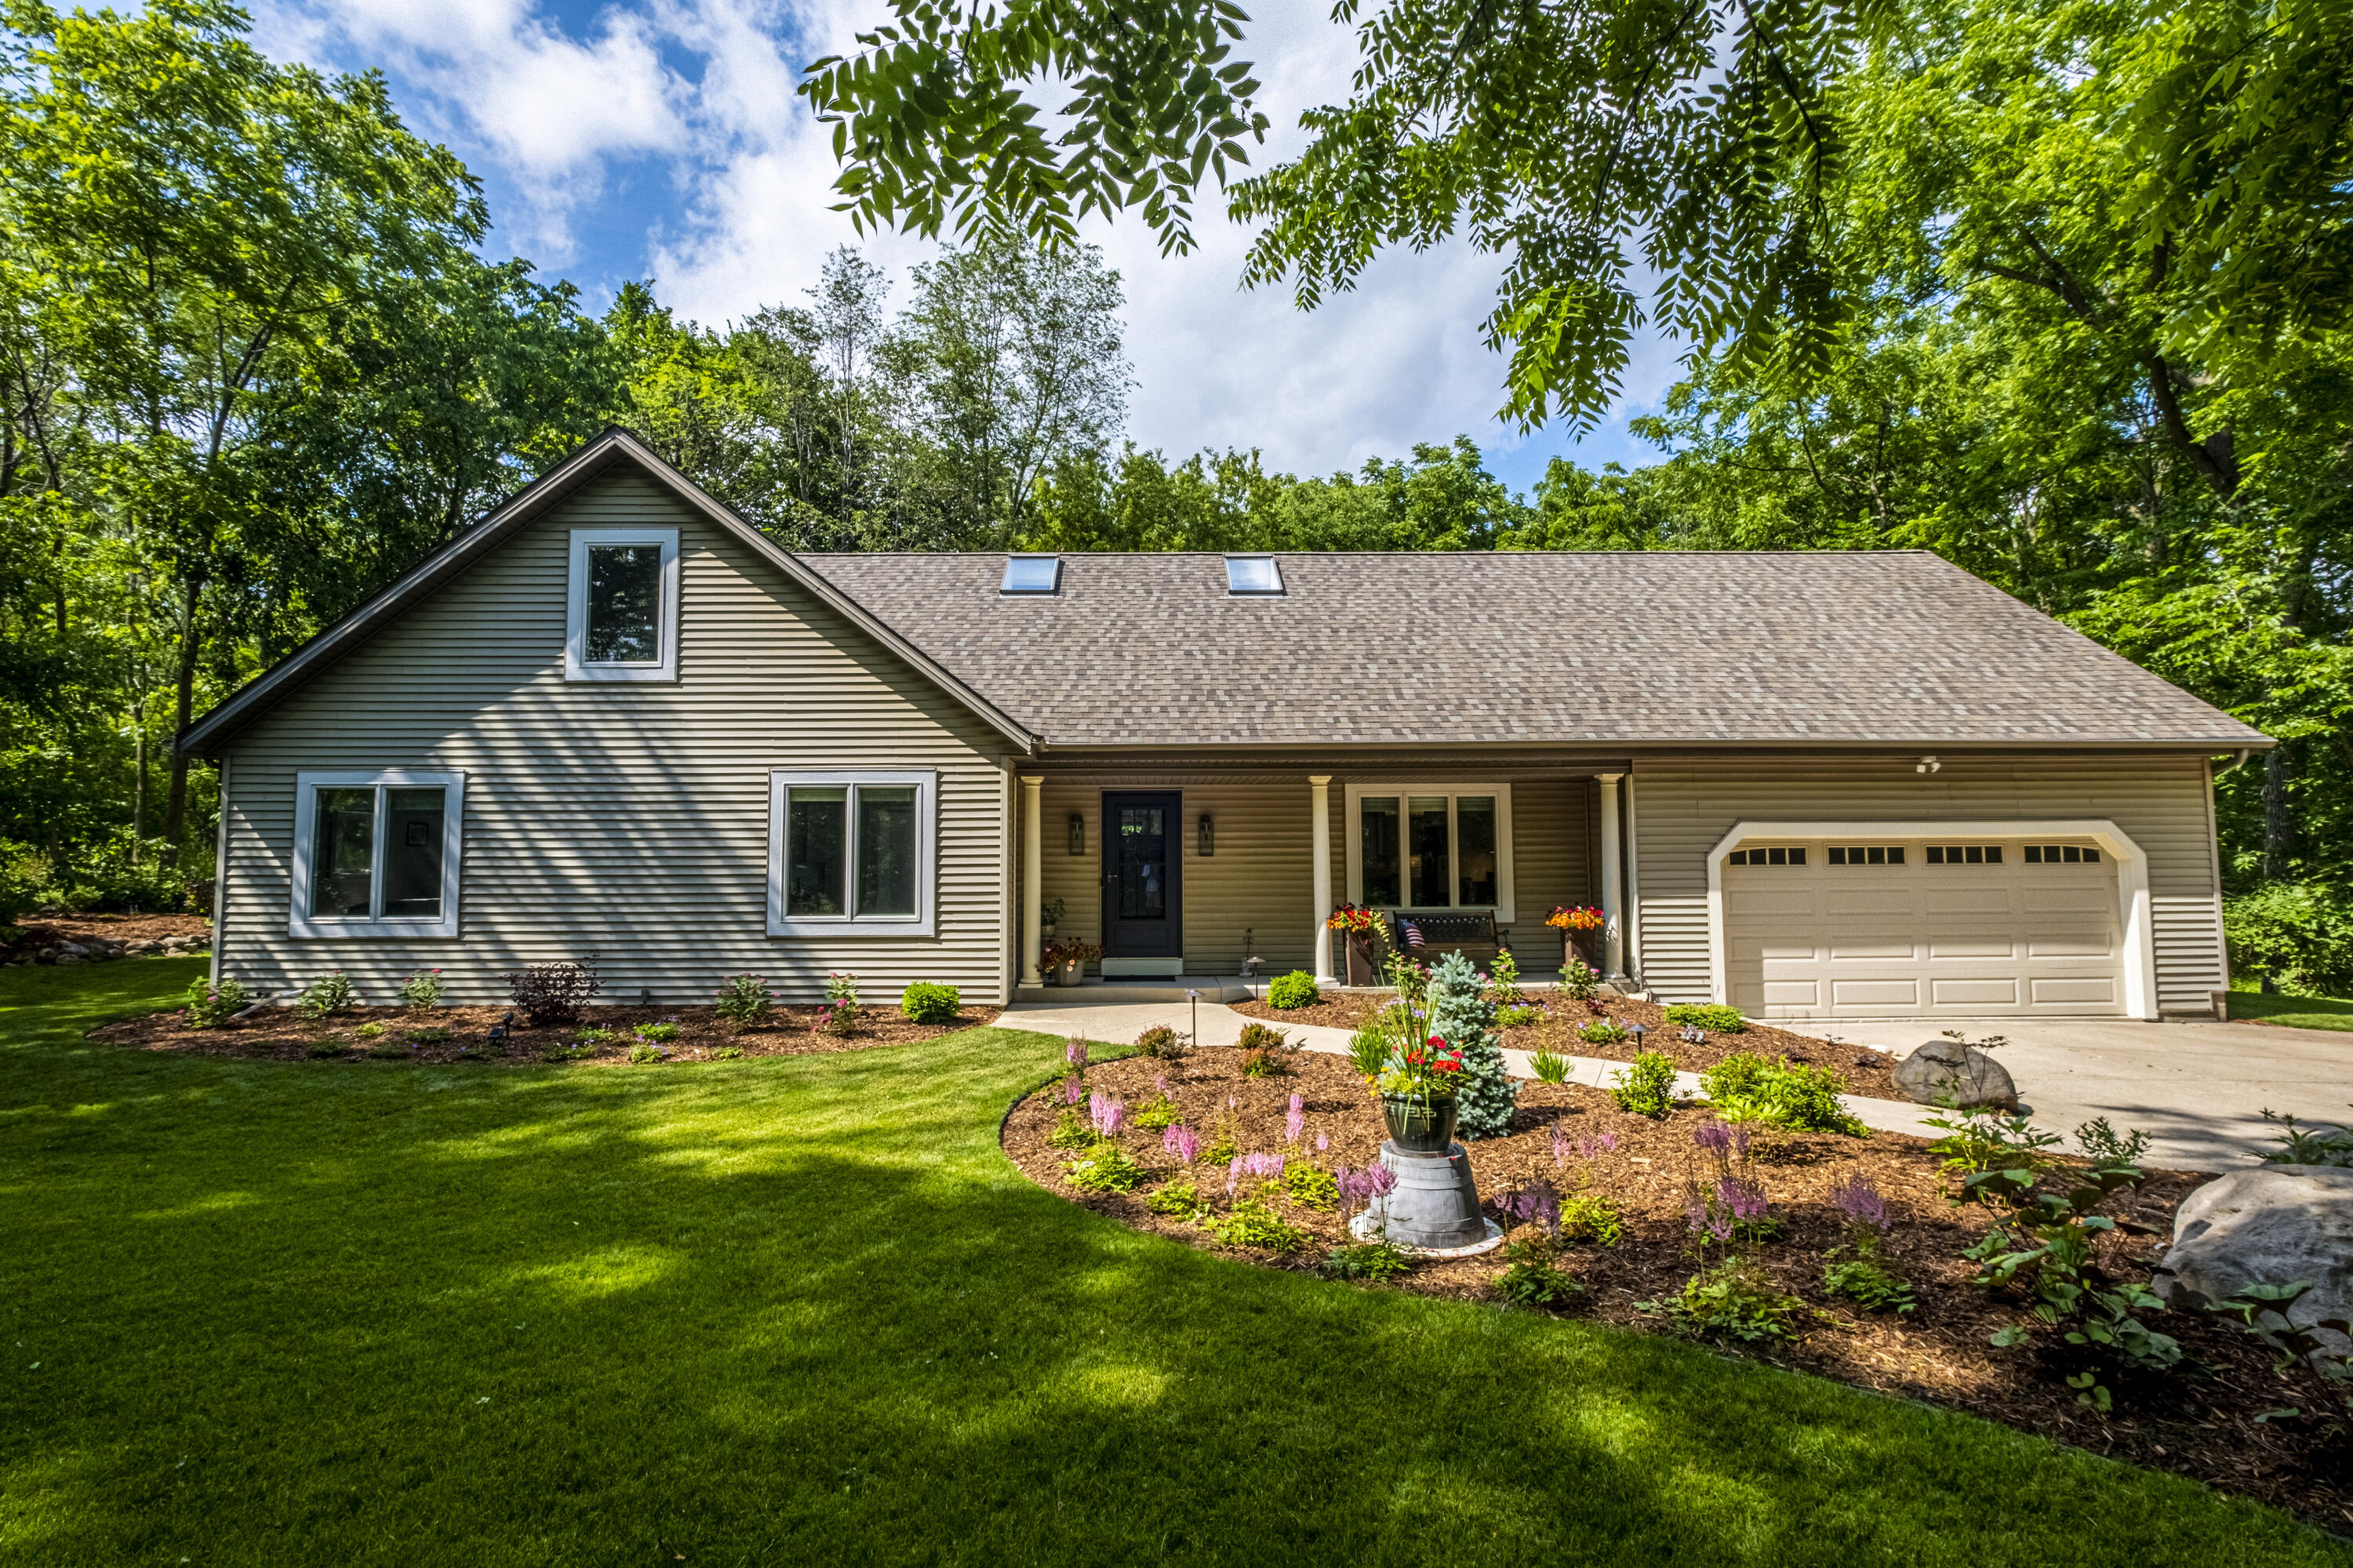 W299N2850 Maple Ave, Delafield, Wisconsin 53072, 3 Bedrooms Bedrooms, 8 Rooms Rooms,3 BathroomsBathrooms,Single-Family,For Sale,Maple Ave,1749009